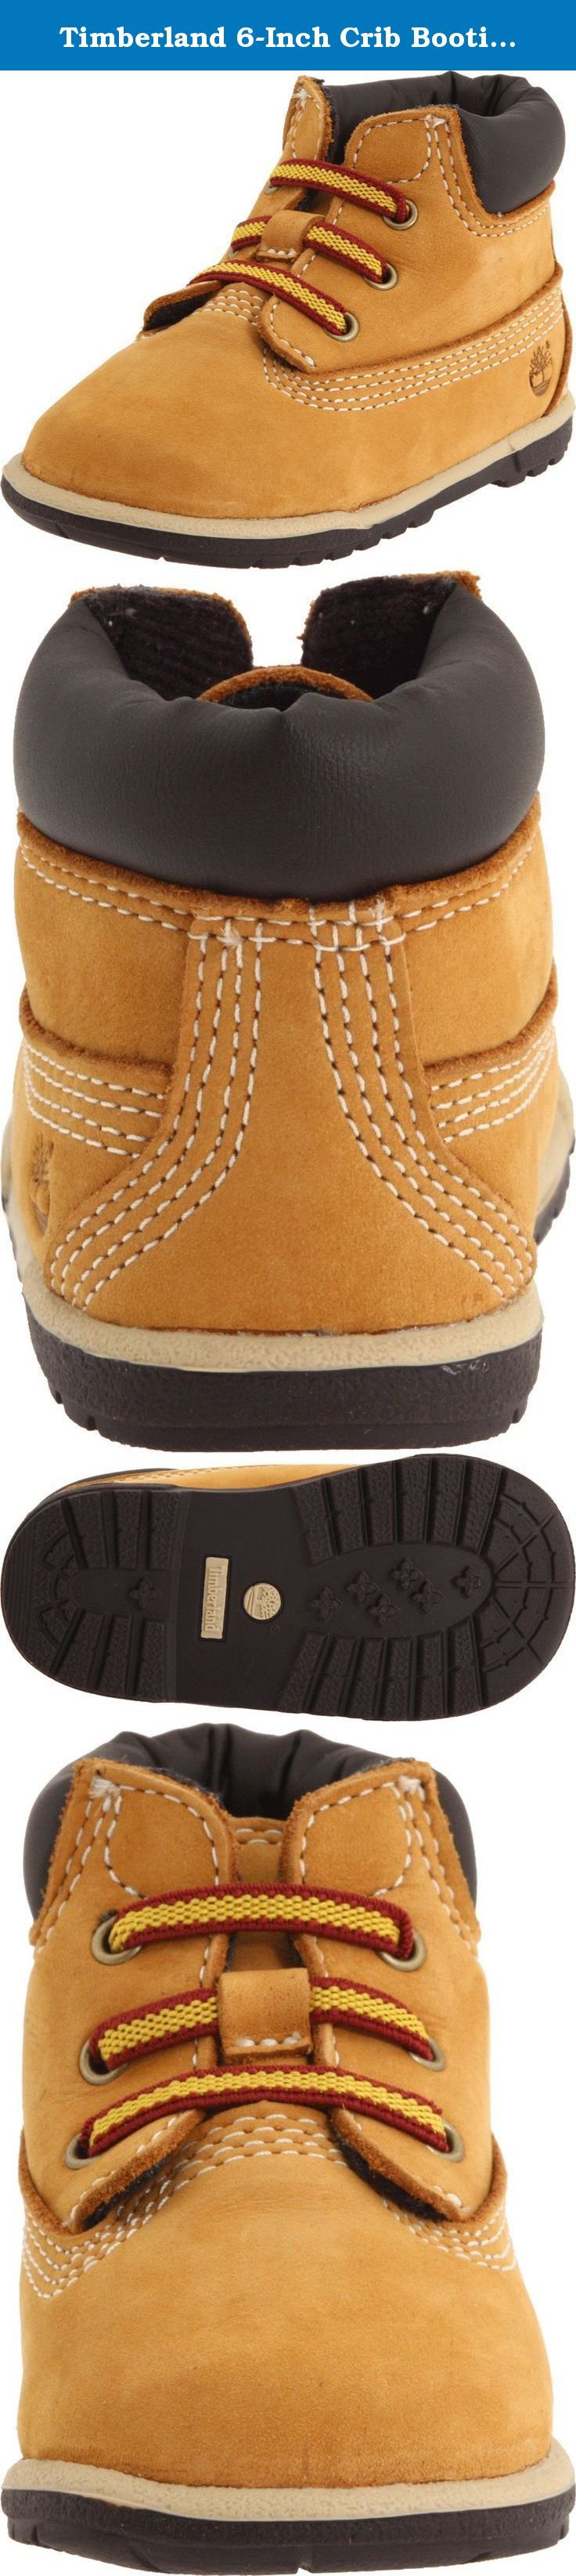 Timberland 6-Inch Crib Bootie (Infant/Toddler),Wheat,1 M US Infant. Stretch elastic laces for easy on and off. Padded collar offers comfort where it counts. Brushed nylon lining and footbed cover keep feet fresh. EVA footbed absorbs shock. Flexible rubber outsole provides.